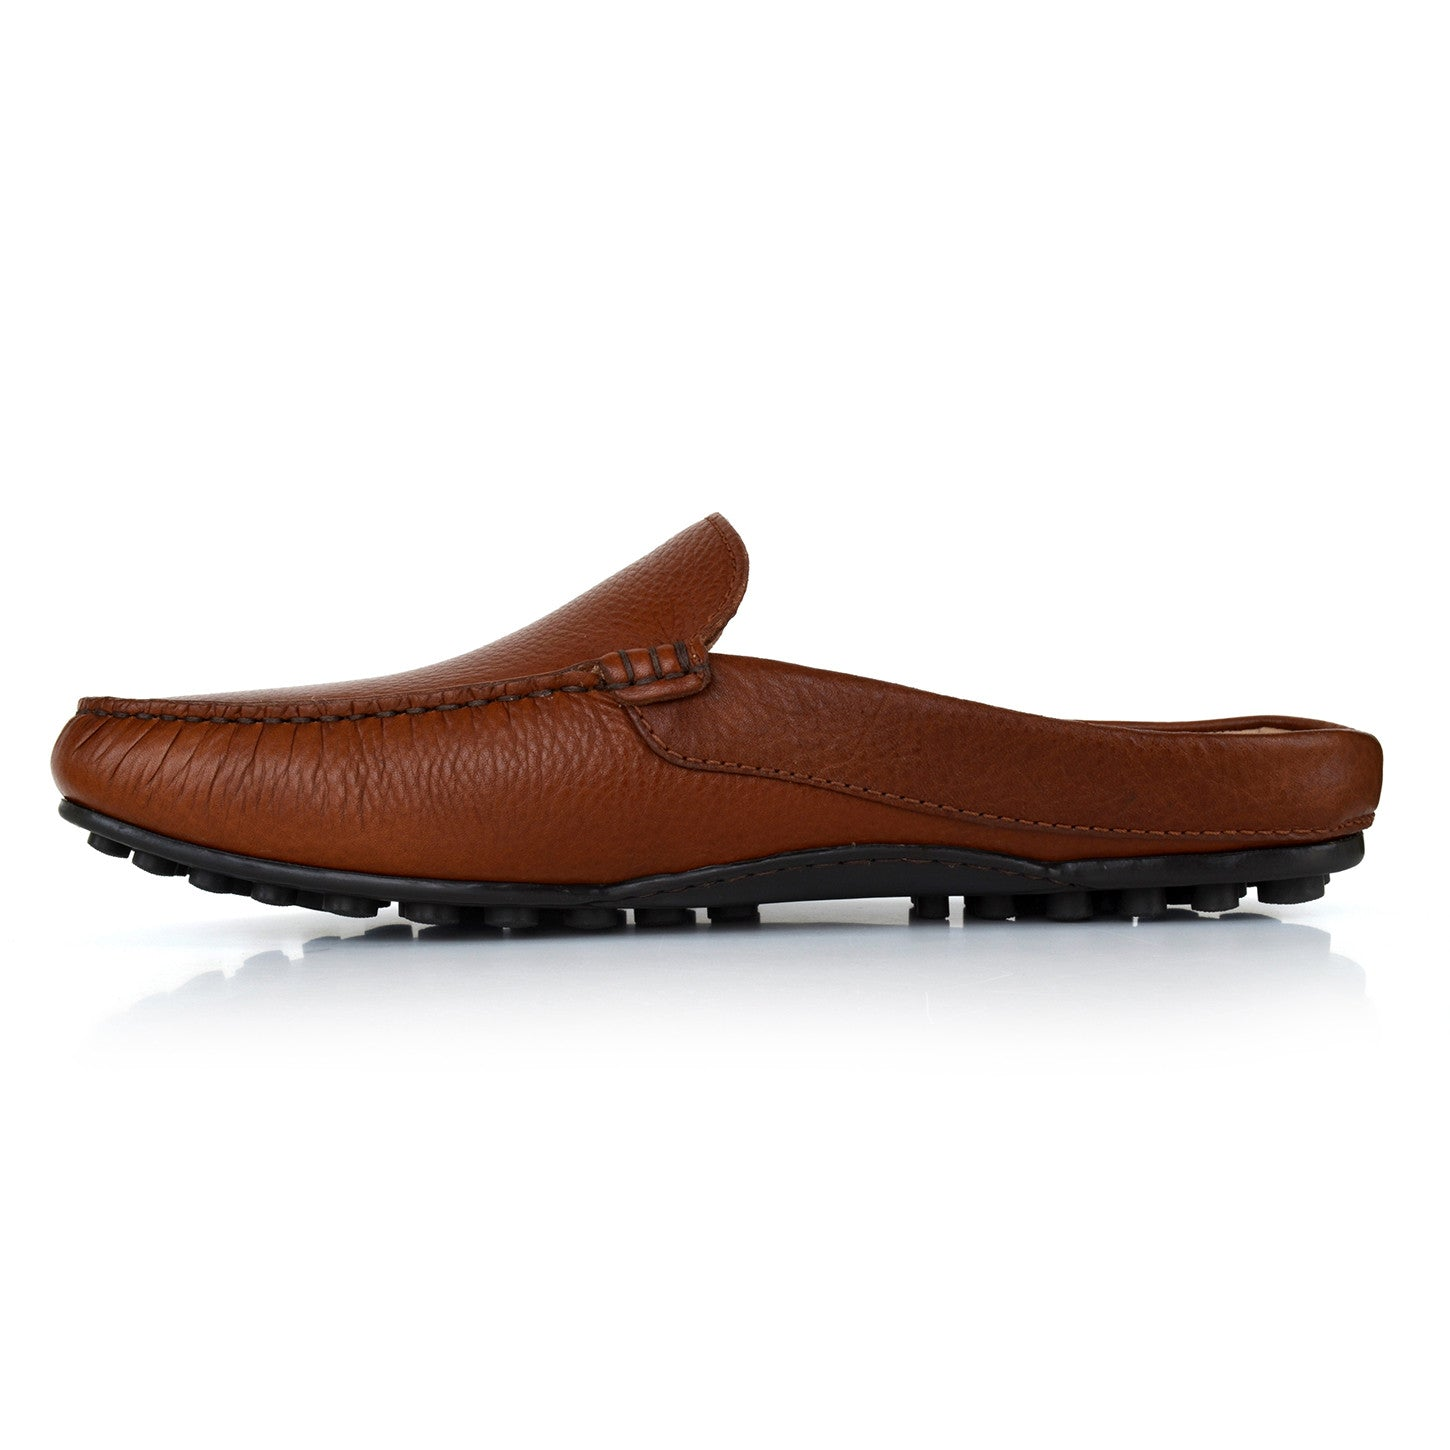 3098 - Language Lemas Men's Casual Tan Moccasins